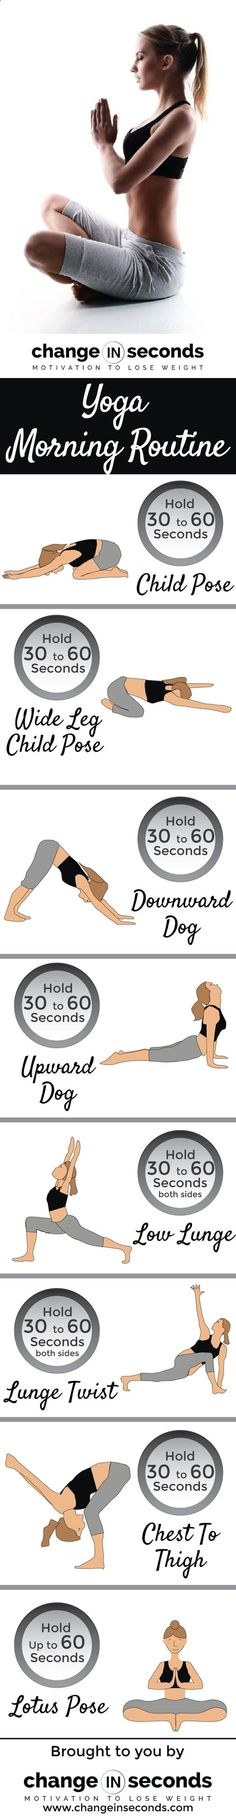 Easy Yoga Workout - The Yoga Burn Technique For Women by Zoe Bray-Cotton Learn how to look AND feel your best with me yogaburnreviewszo... Get your sexiest body ever without,crunches,cardio,or ever setting foot in a gym #YogaTechniqueAndPostures